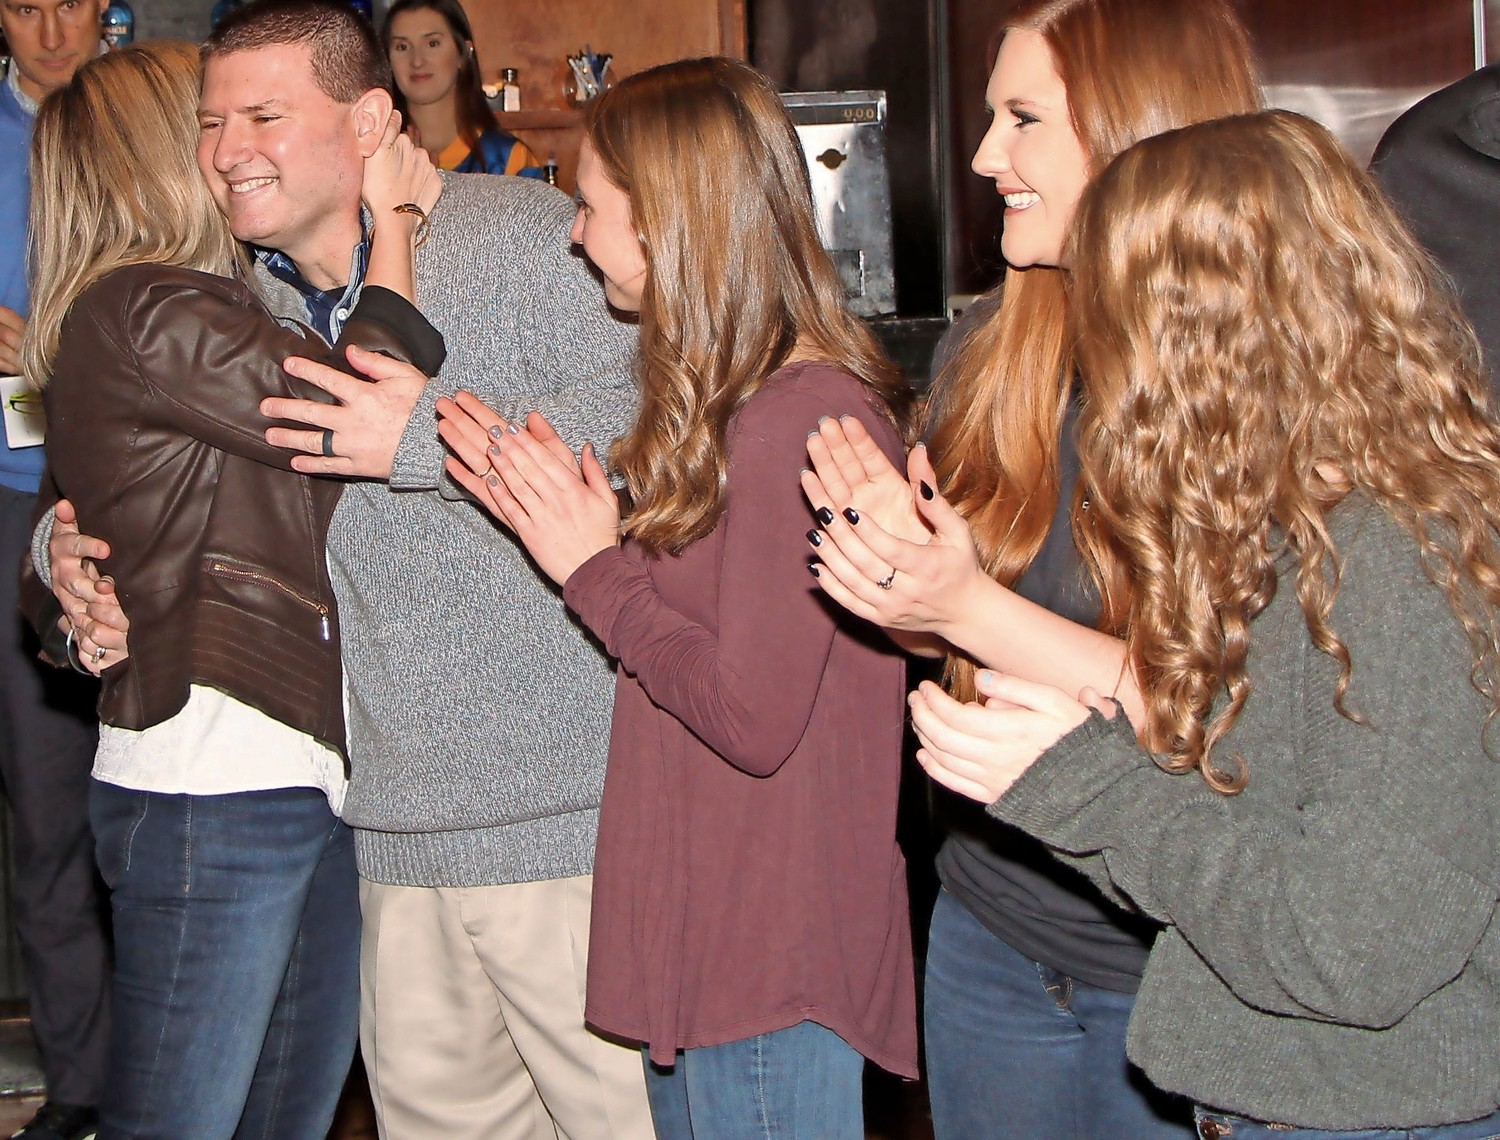 Heather O'Brien embraced her husband Sean. They were joined by their daughters Kailyn, 21, Meghan, 20, and Holly, 18.